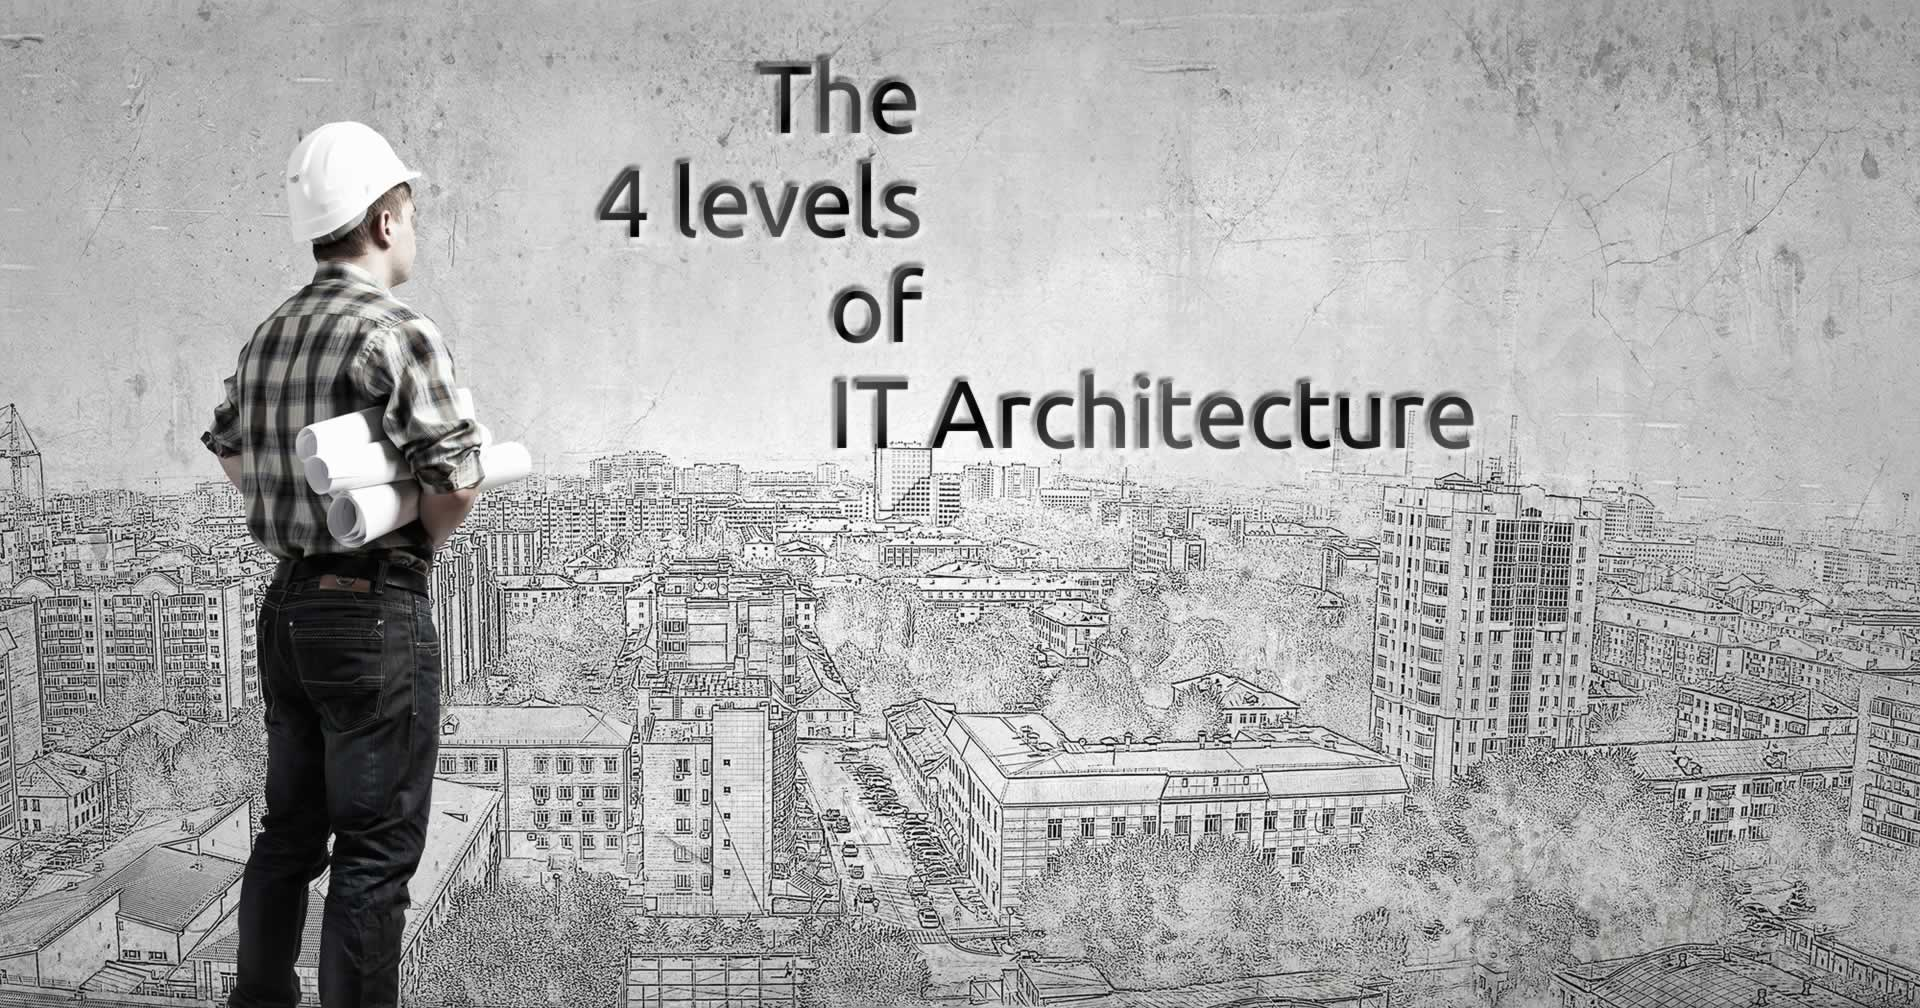 The 4 levels of IT Architecture